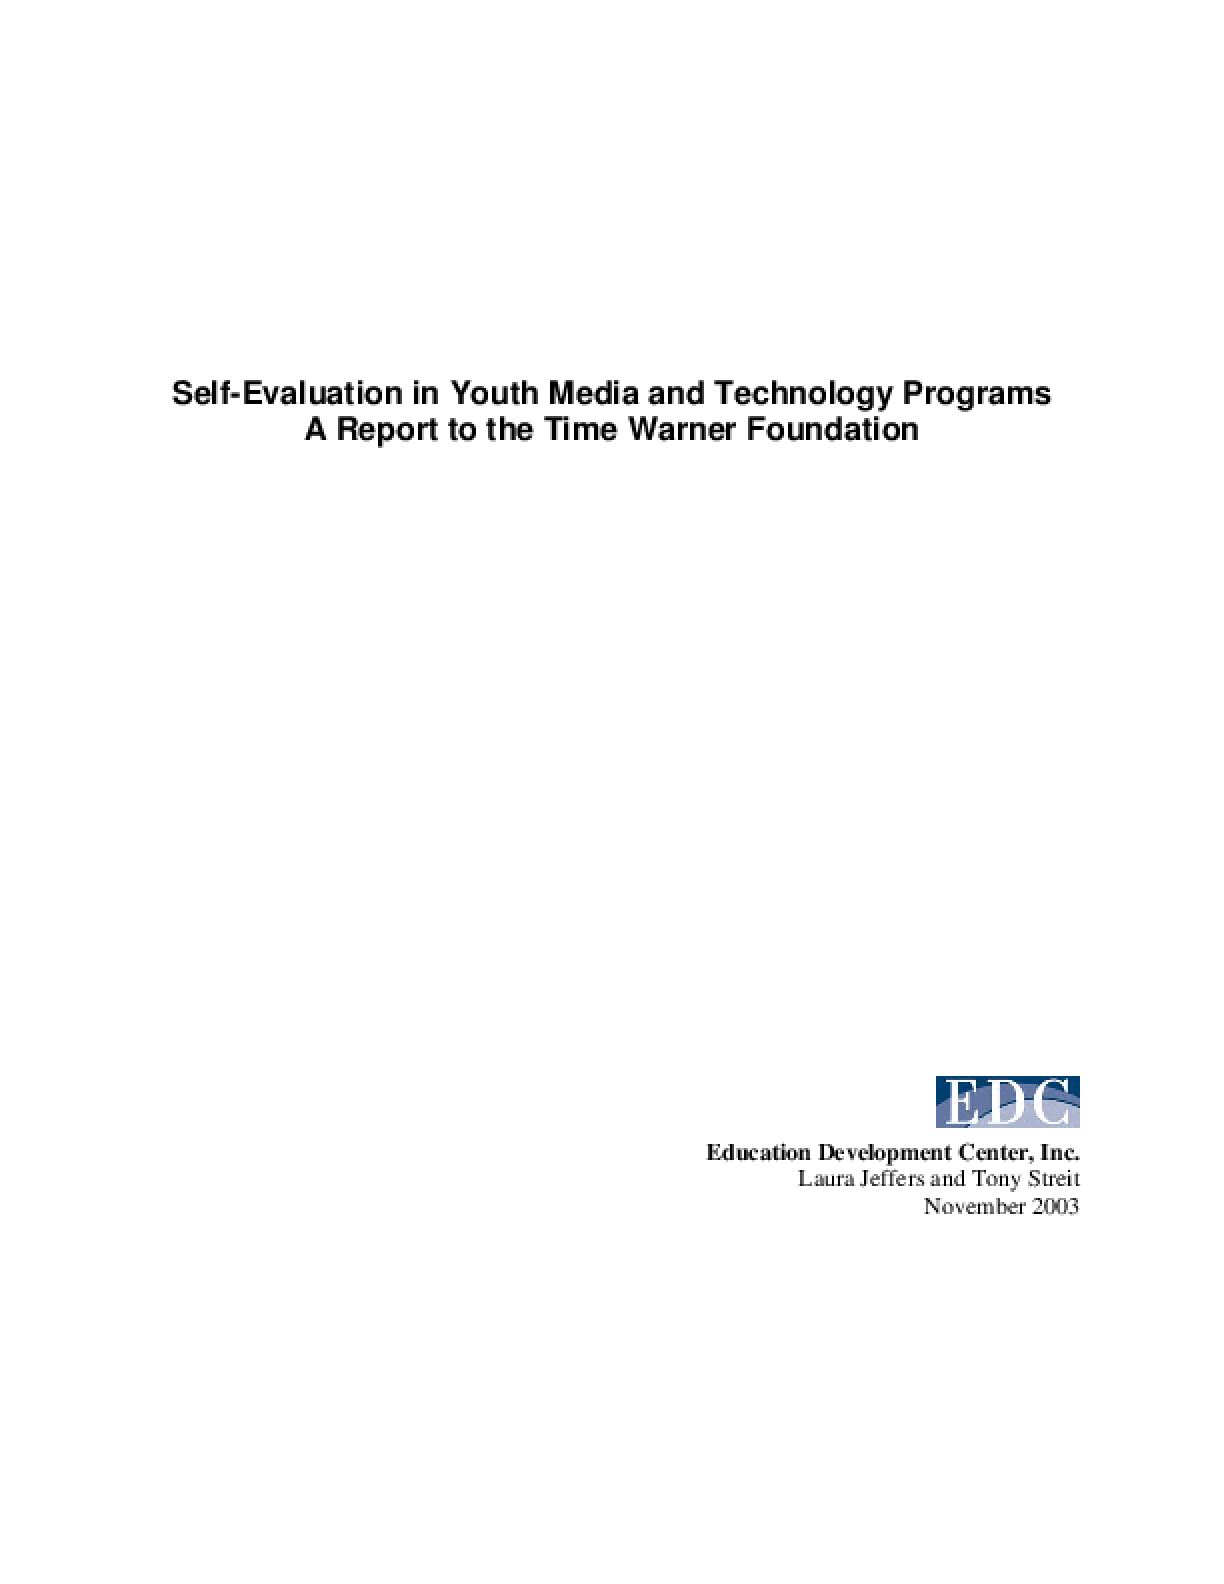 Self-Evaluation in Youth Media and Technology Programs: A Report to the Time Warner Foundation